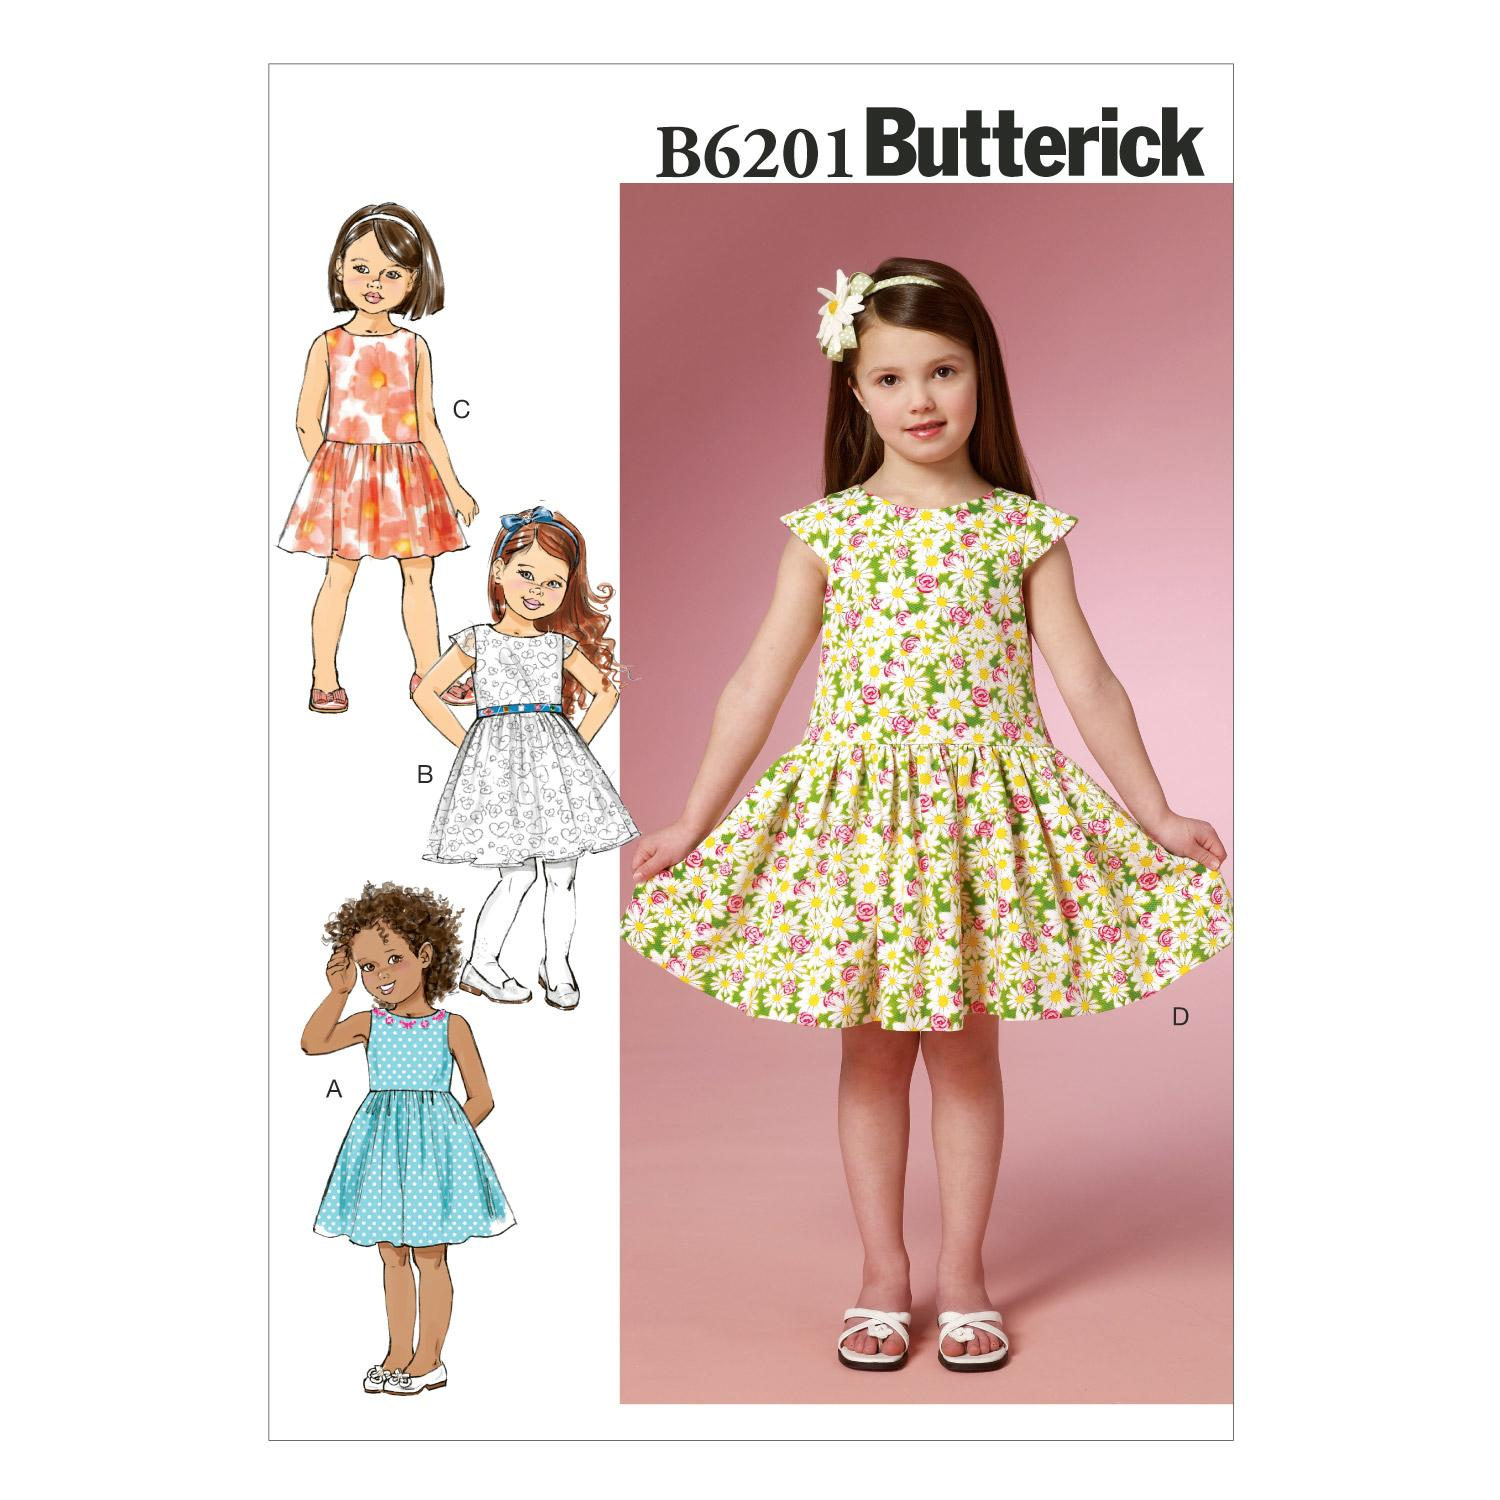 Butterick B6201 Children's/Girls' Dress